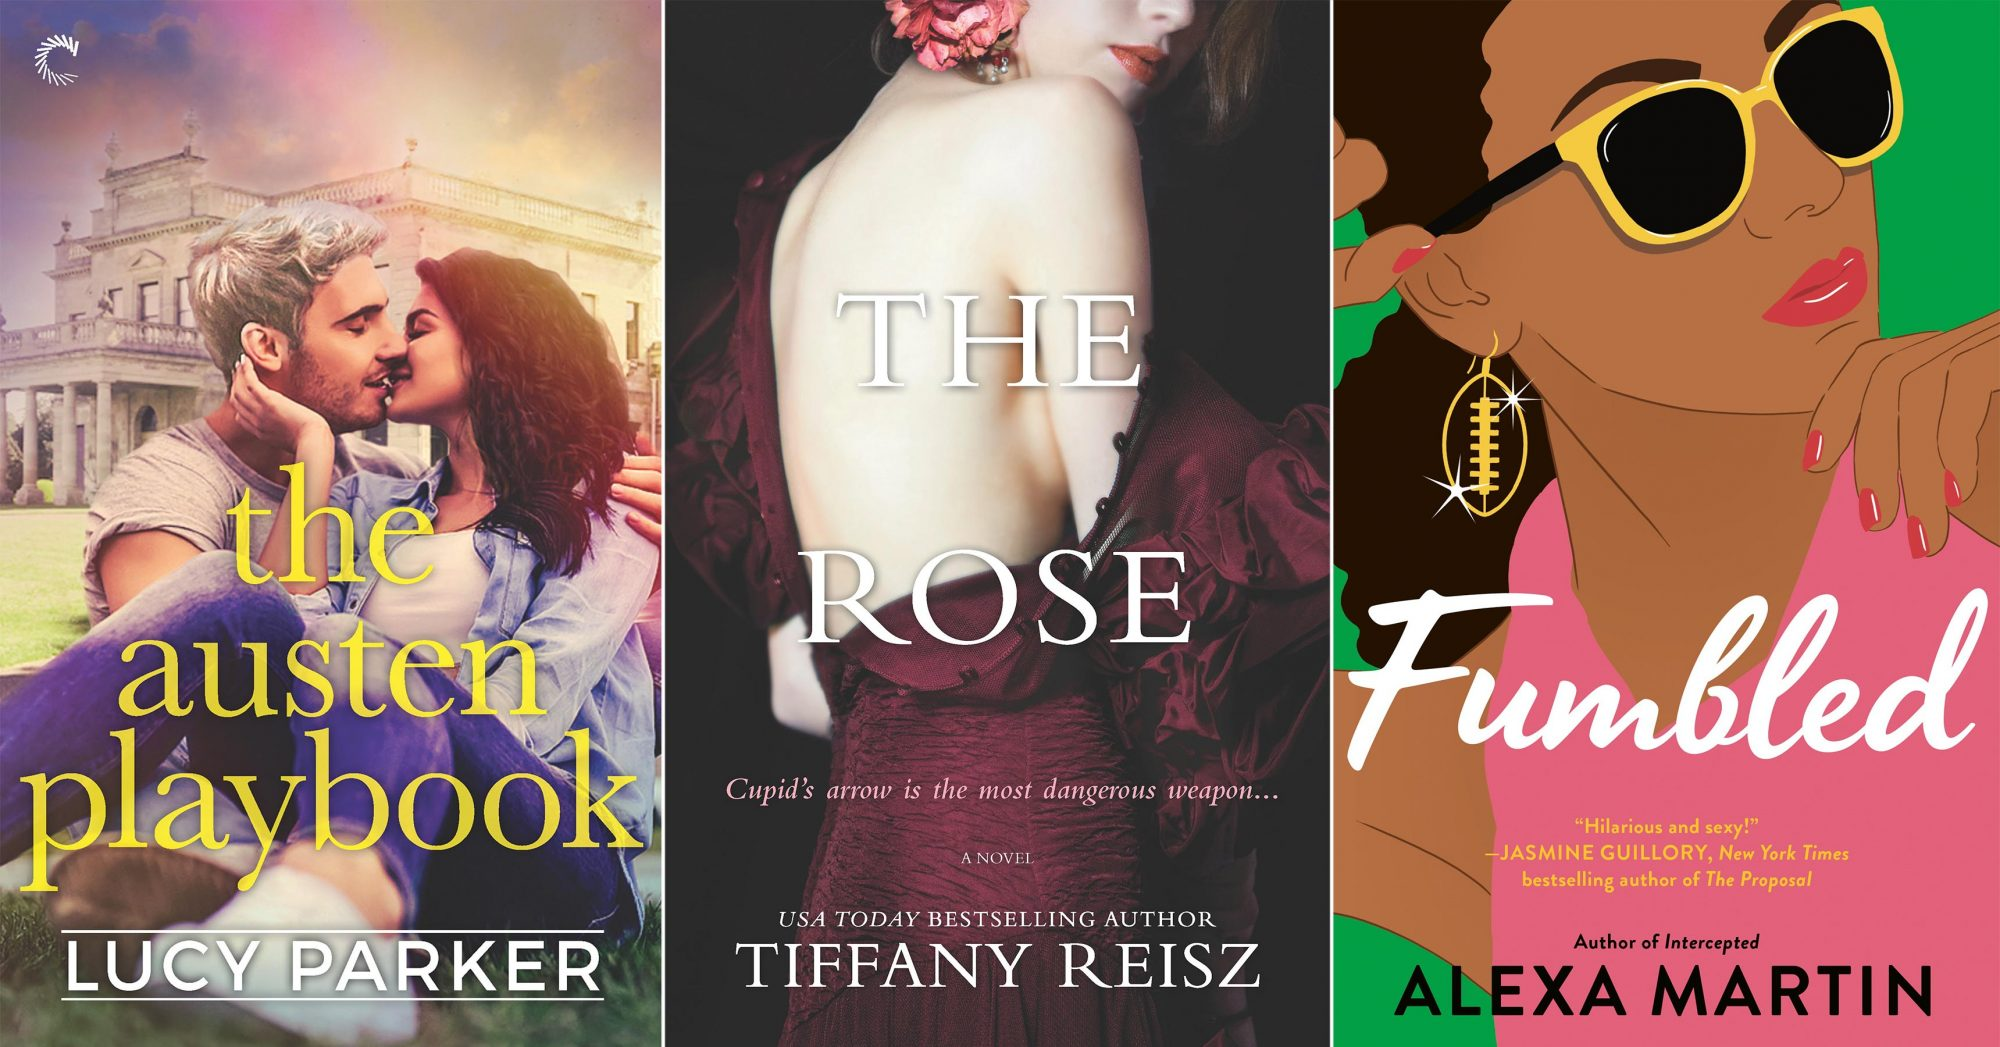 April Romance The Austen Playbook by Lucy Parker CR: Carina Press The Rose by Tiffany Reisz CR: MIRA Fumbled by Alexa Martin CR: Penguin